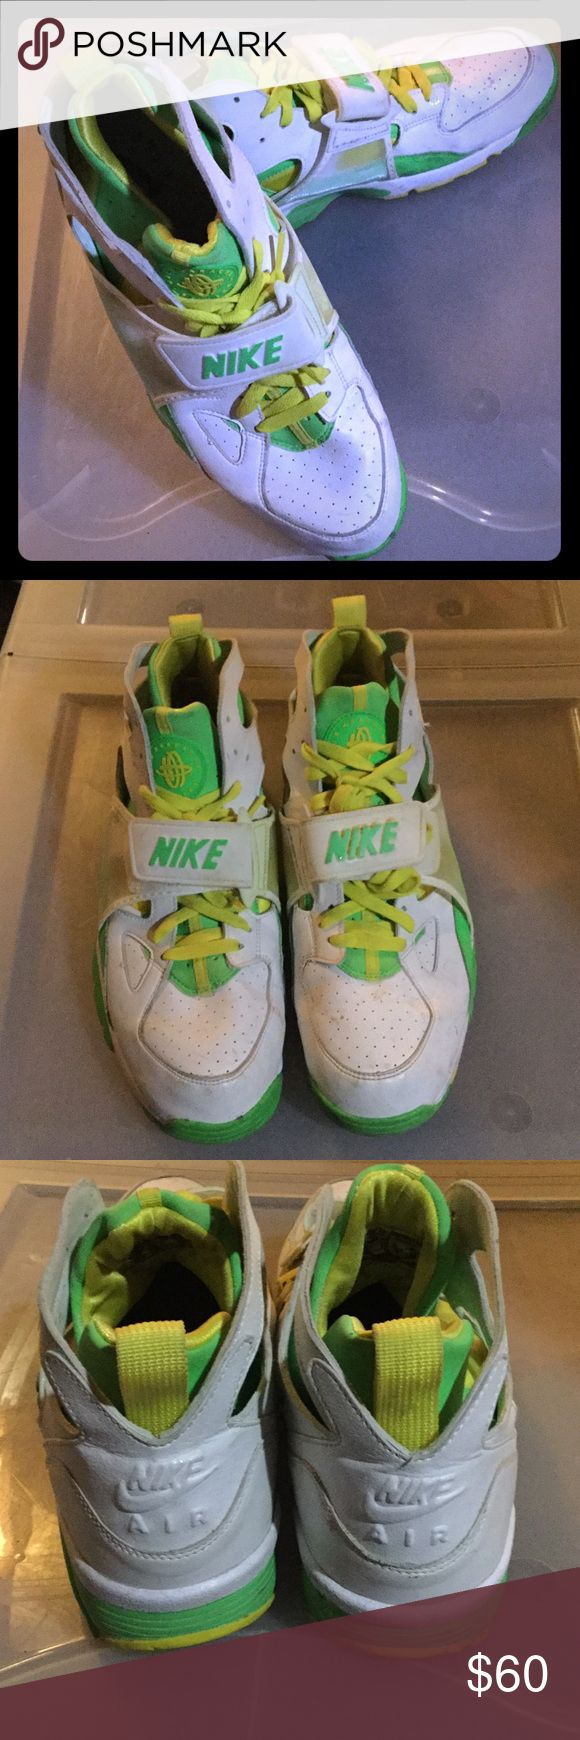 2007 Nike Air Trainer Huarache Shoes size 12 Good condition, barely worn Nike Shoes Sneakers